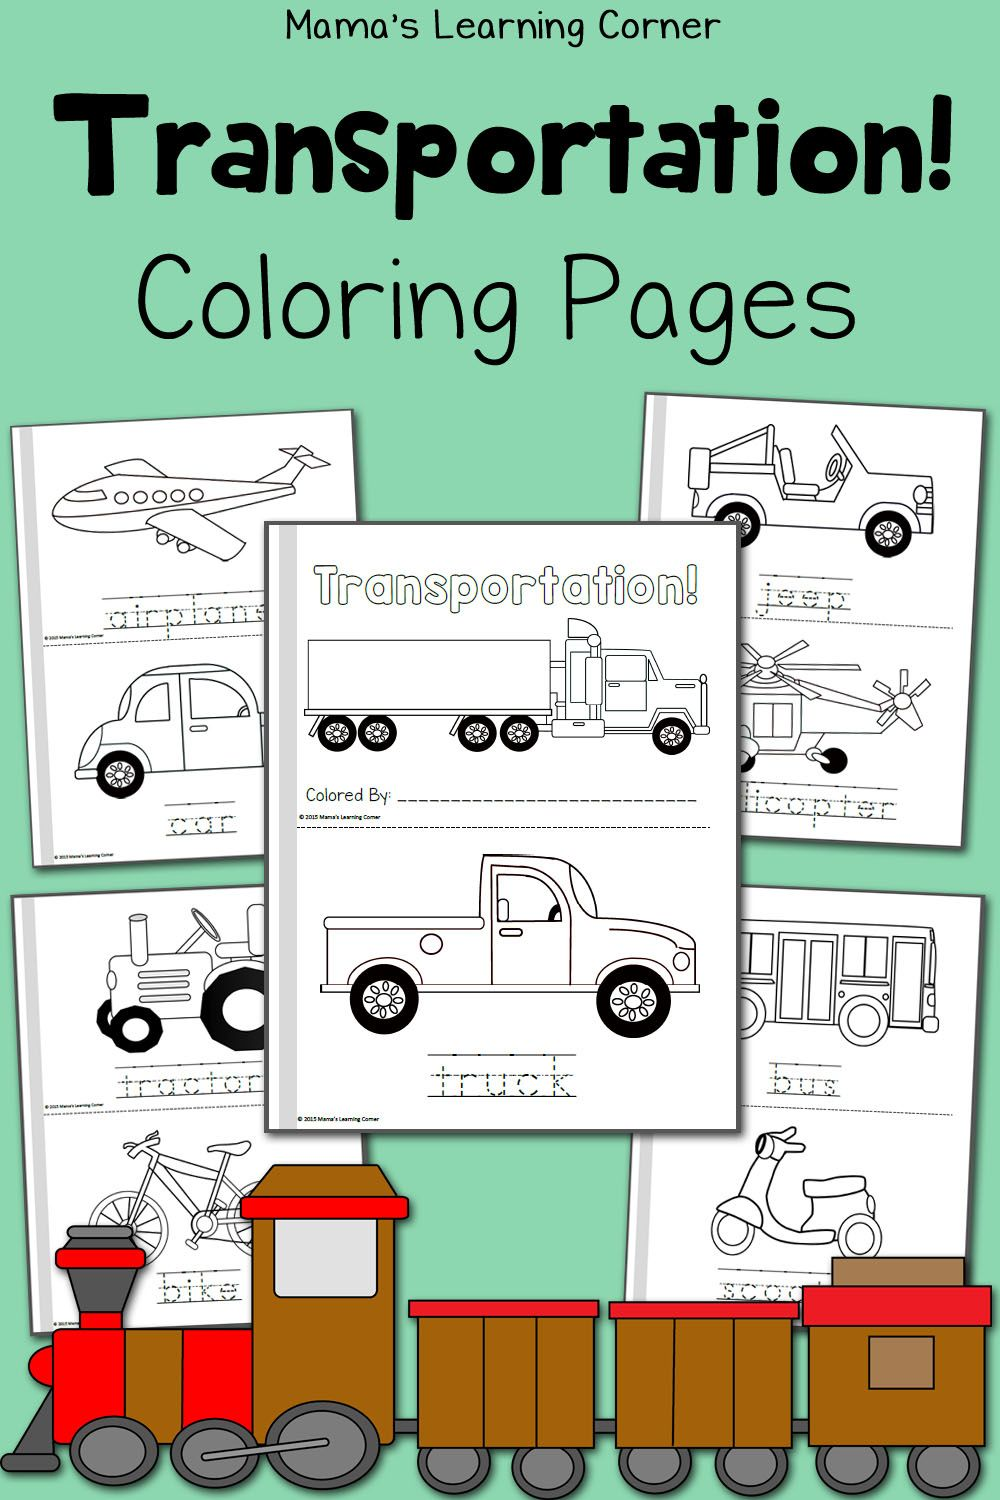 Transportation Coloring Pages | Transportation, Transportation theme ...